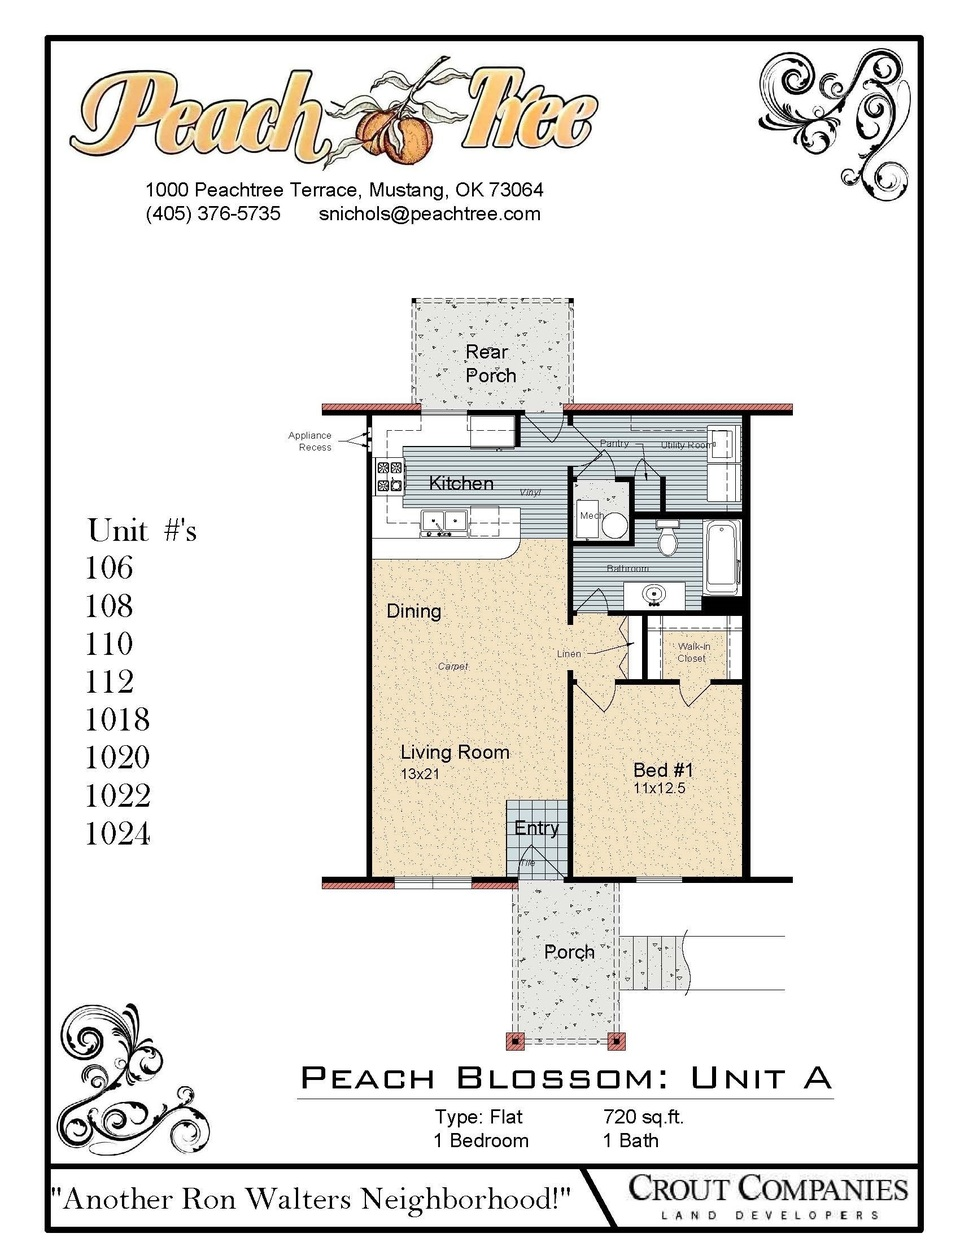 1 Bedroom - Unit A